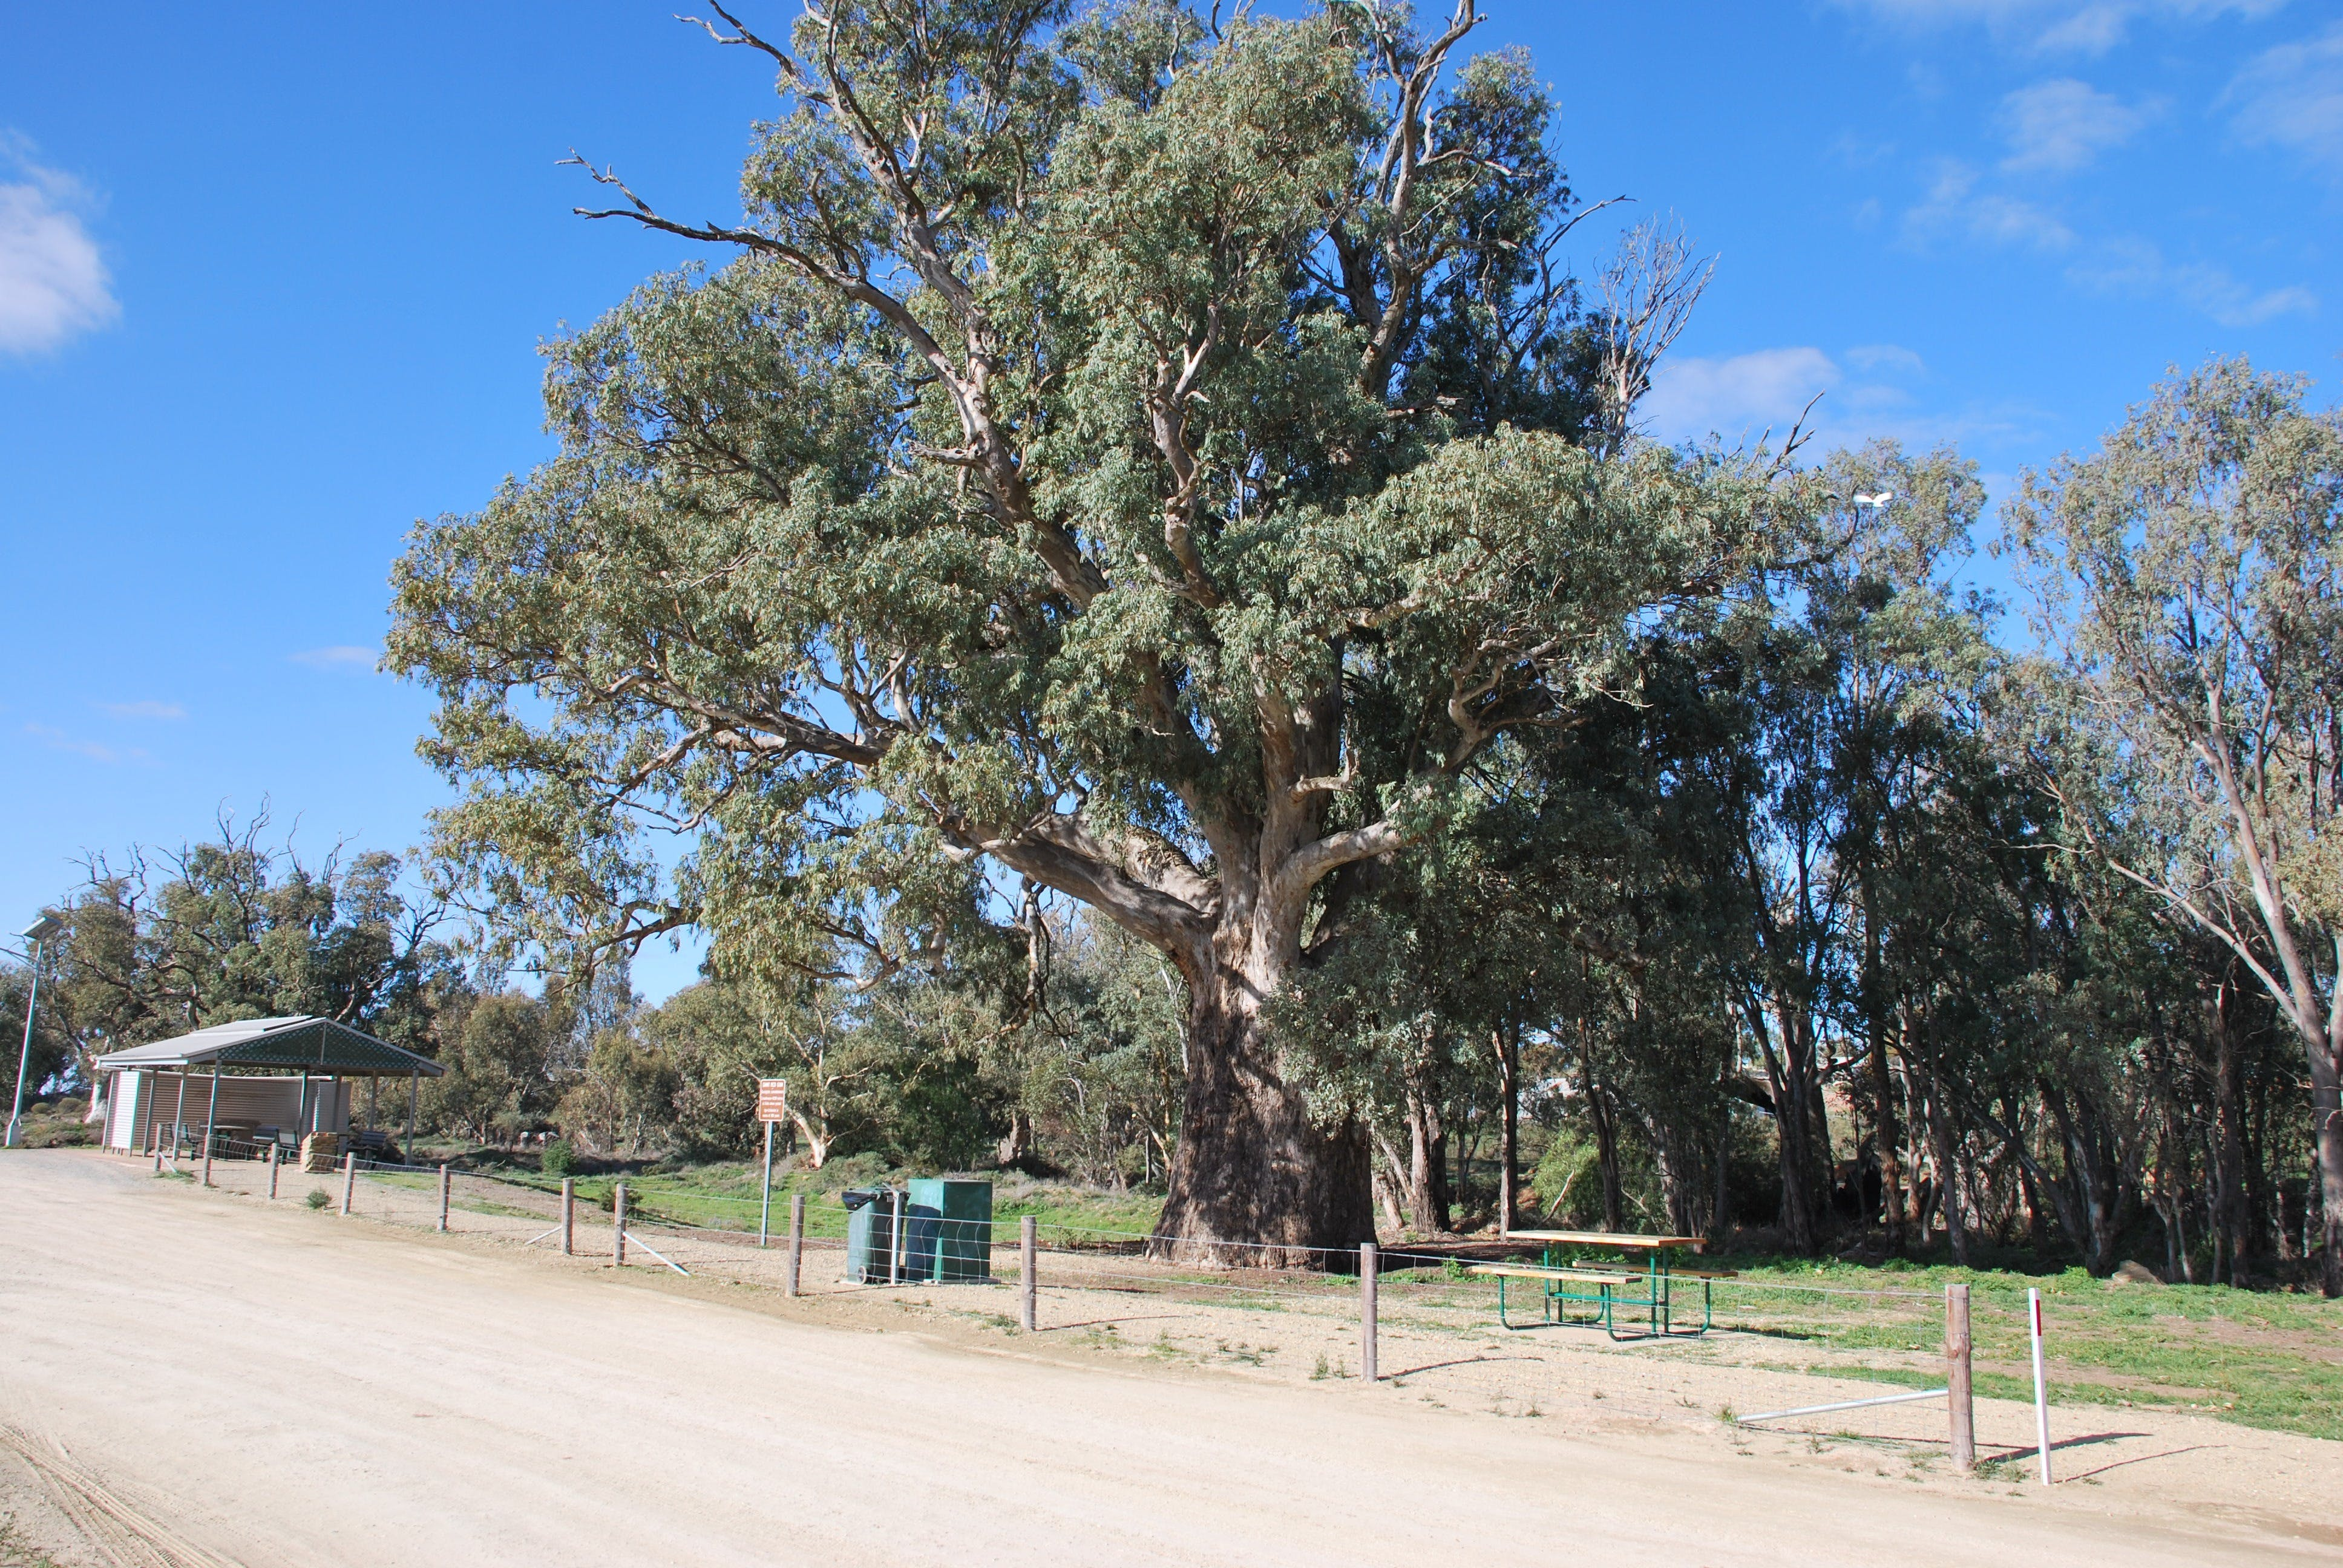 Giant Gum Tree - Accommodation Search